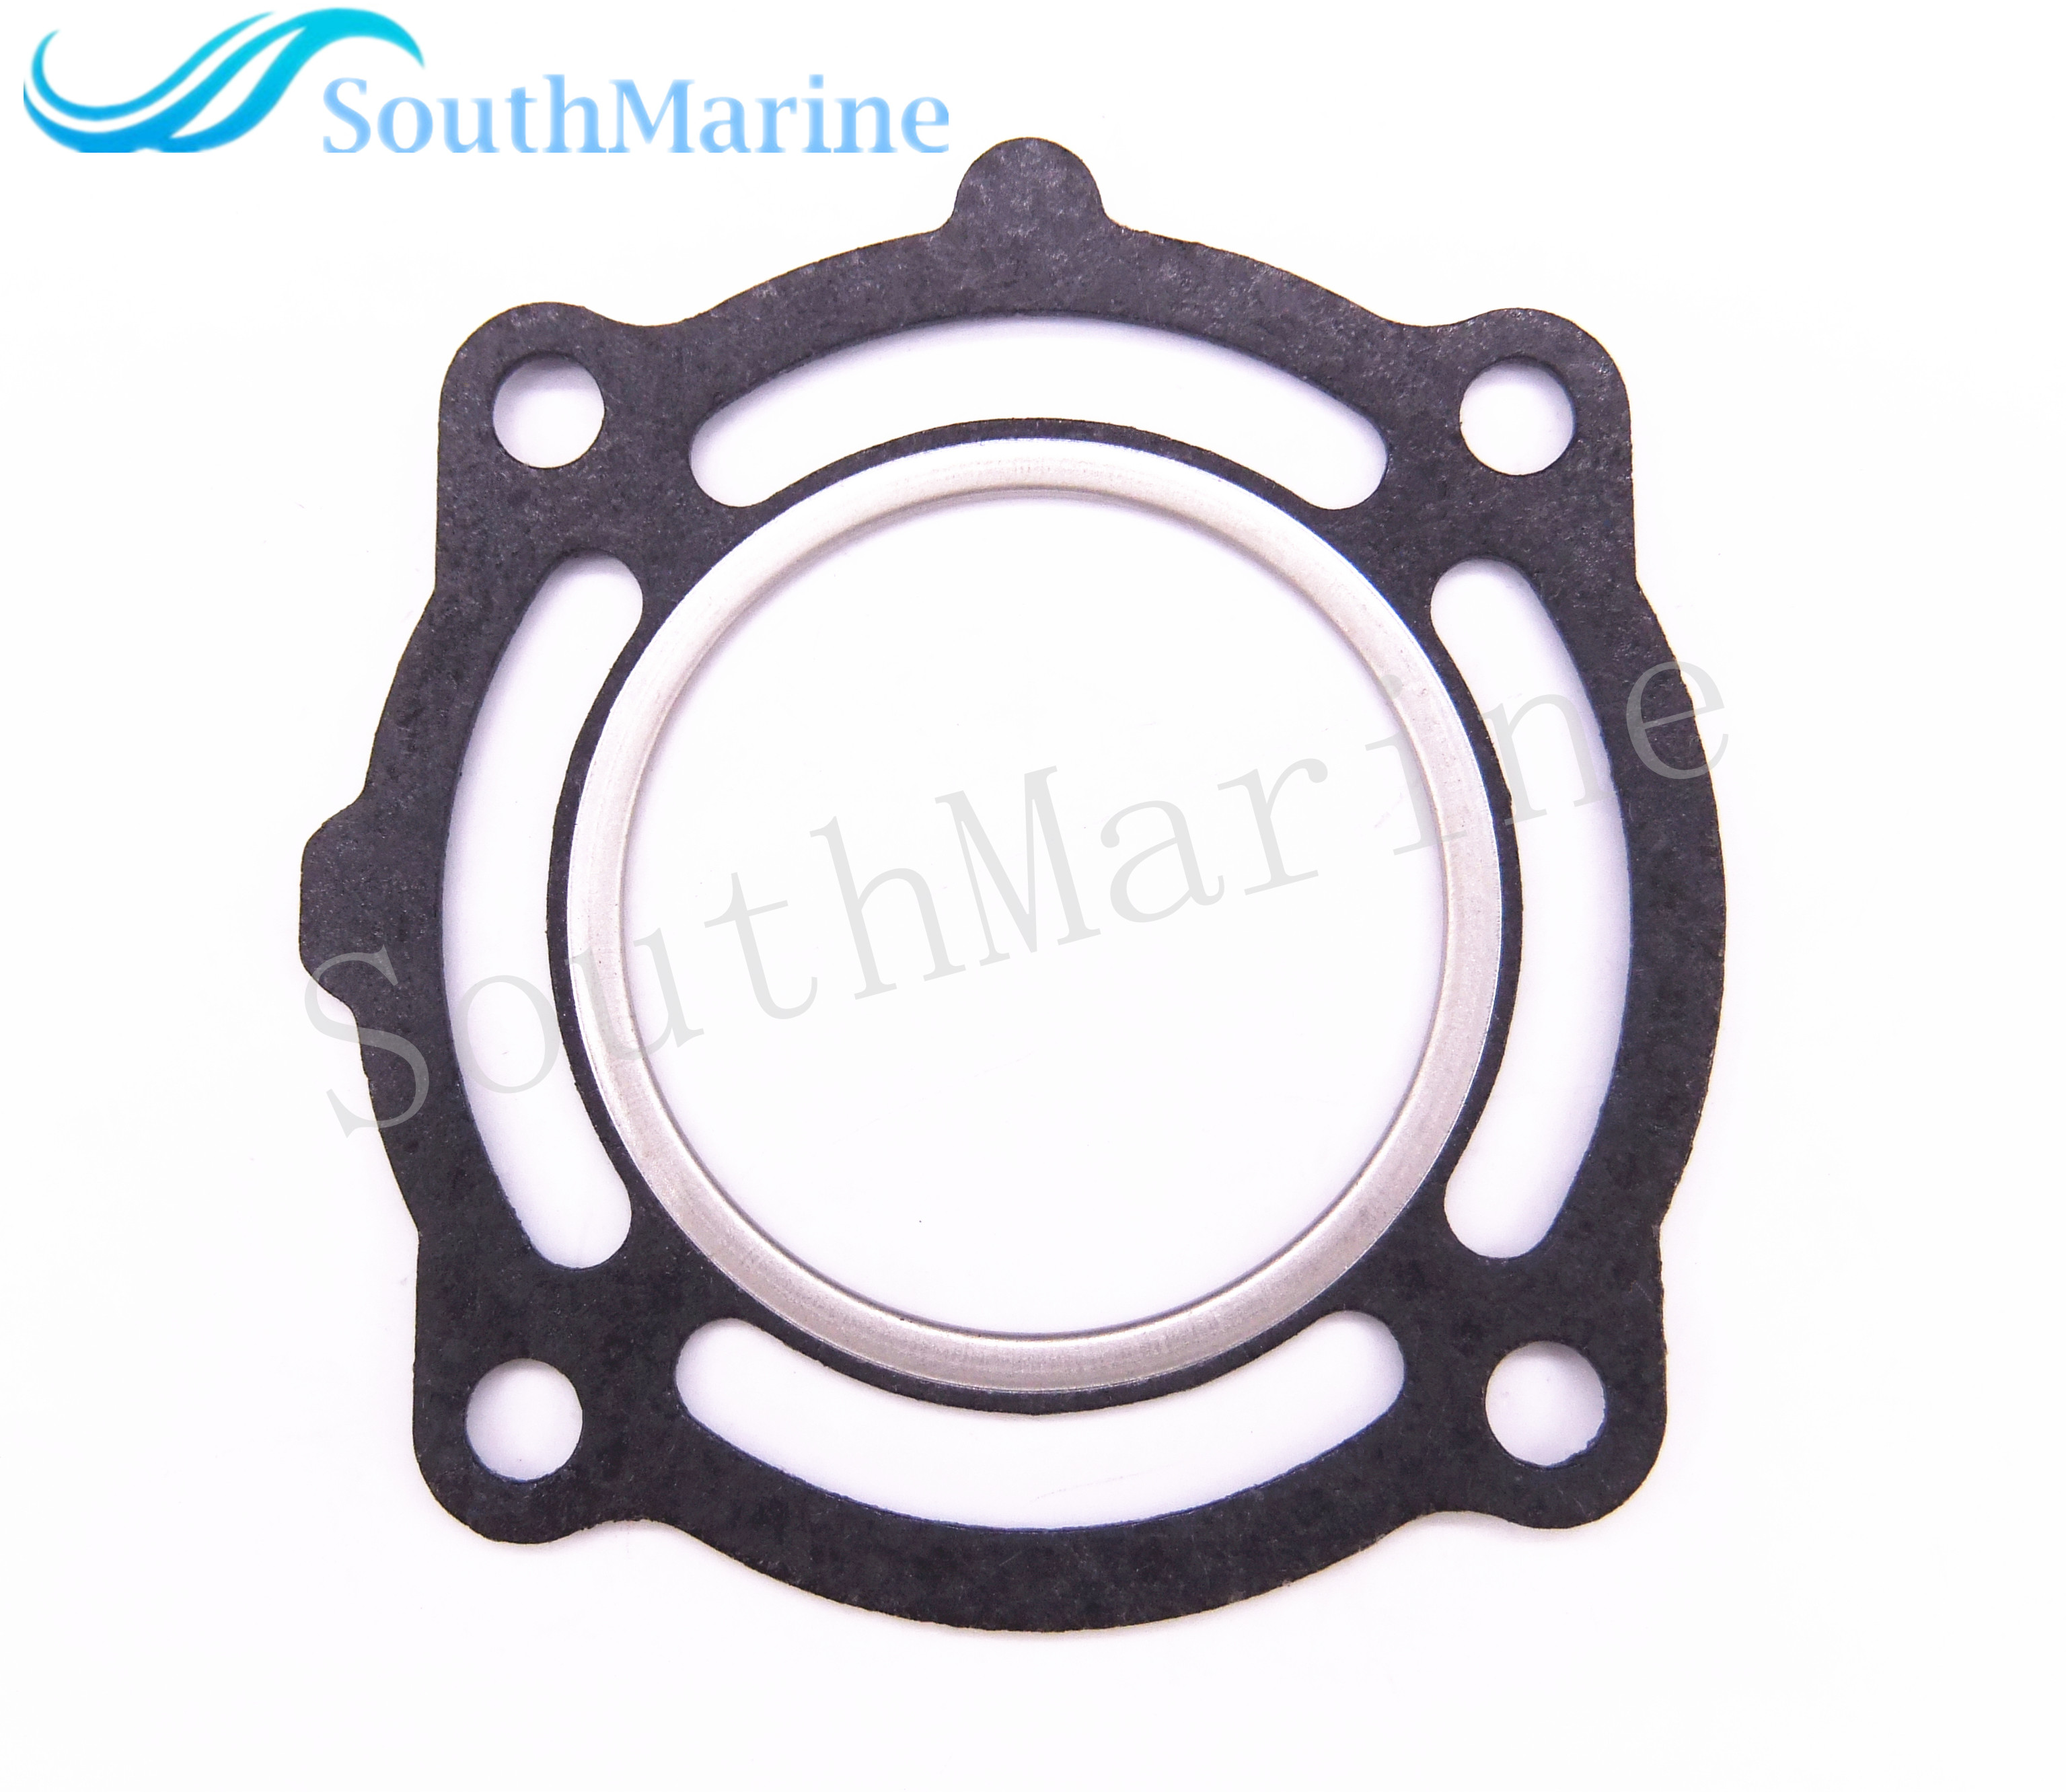 Boat Engines Cylinder Head Gaskets T2-04000001 Outboard Motors For Parsun HDX 2-Stroke T2.6 T2 ,Free Shipping